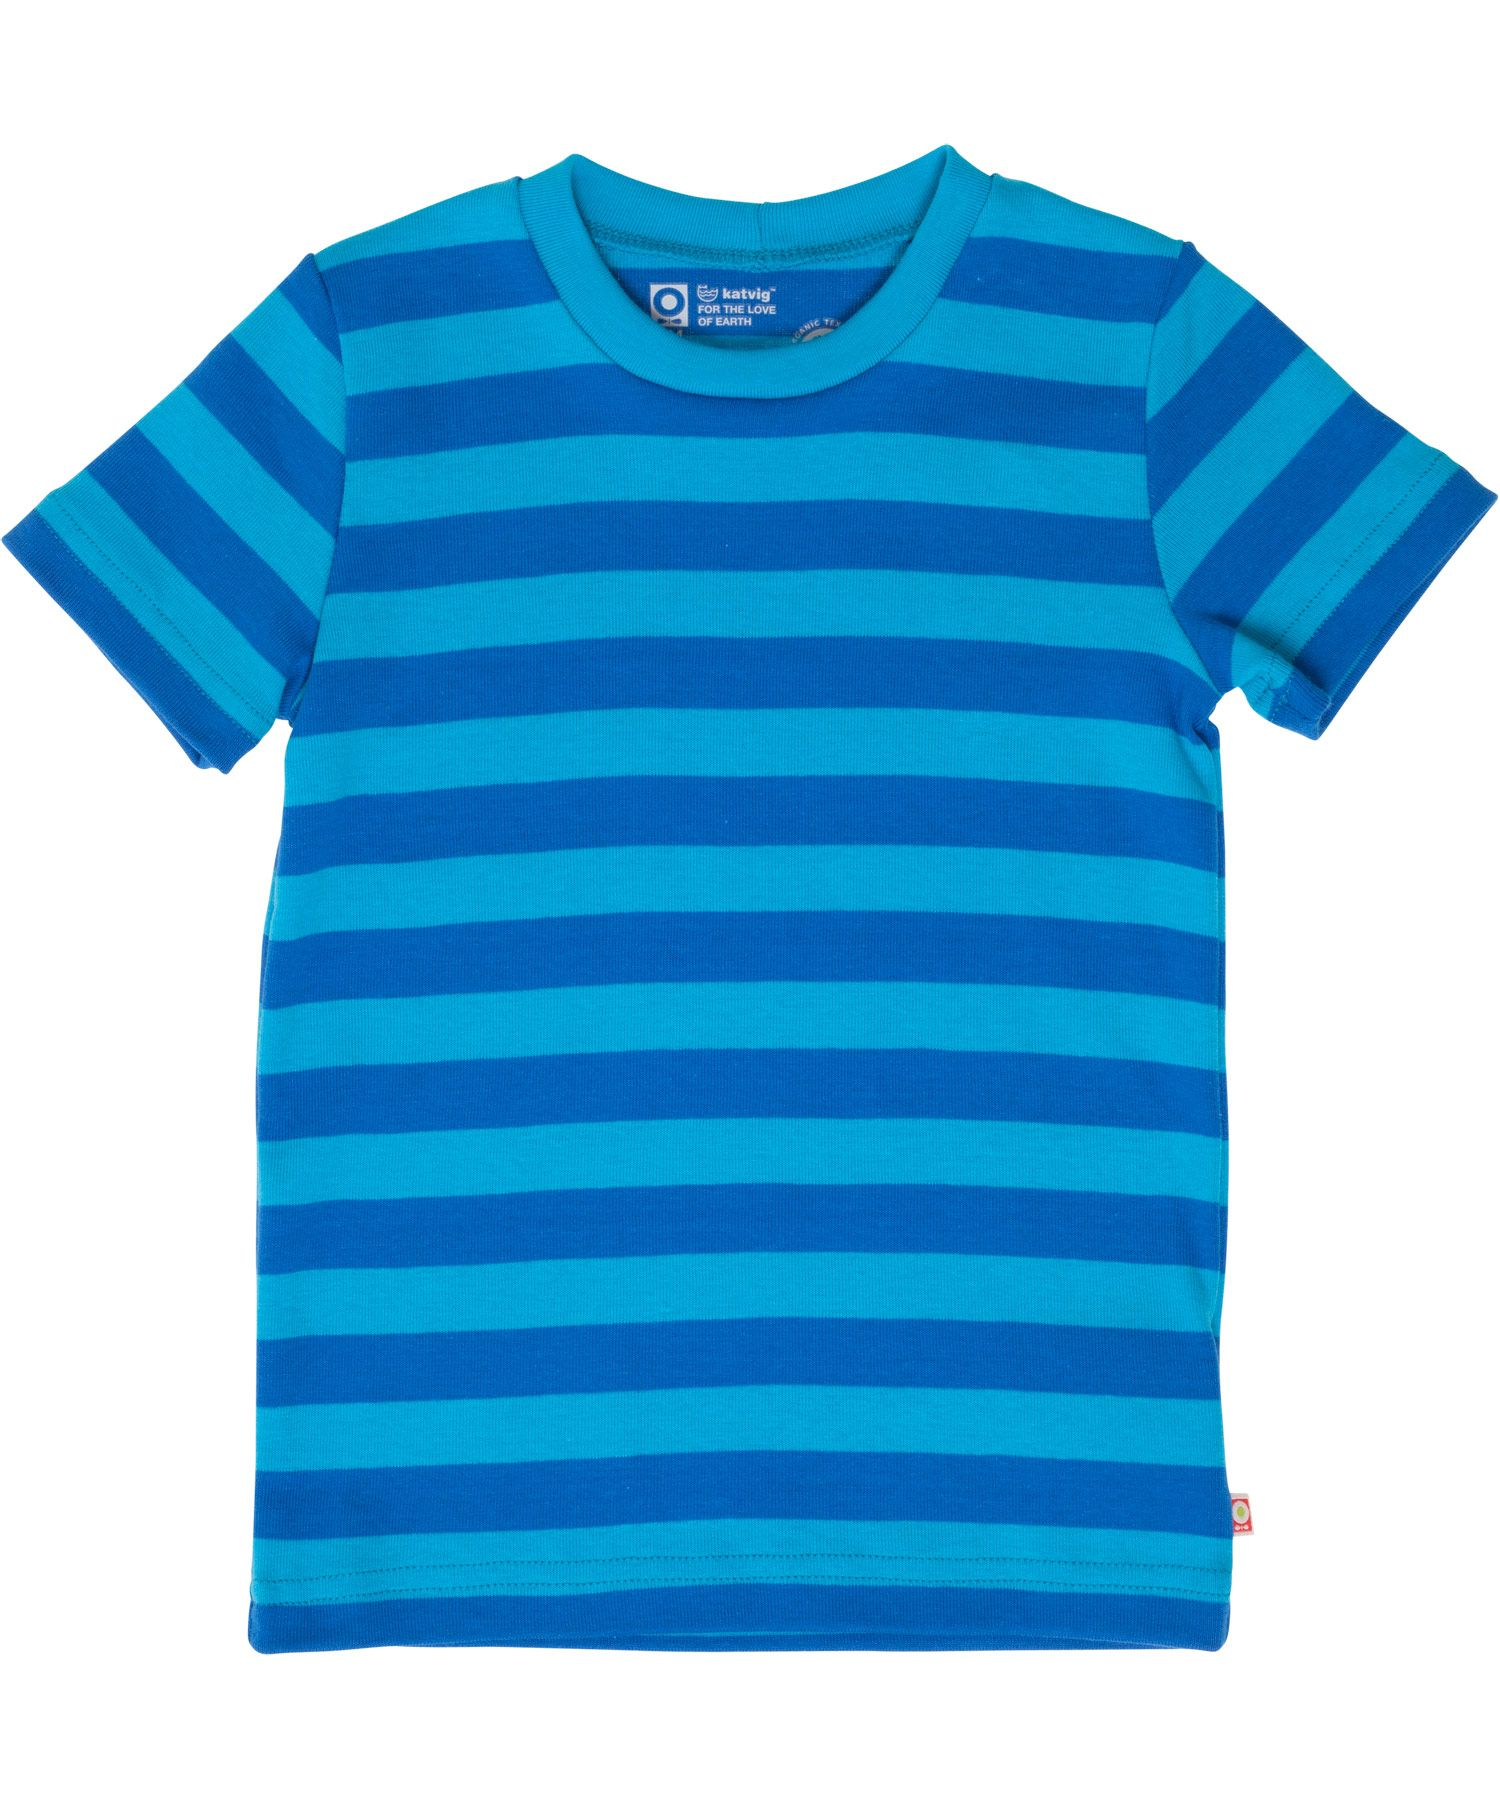 Best 25 striped t shirts ideas on pinterest striped for Best striped t shirt